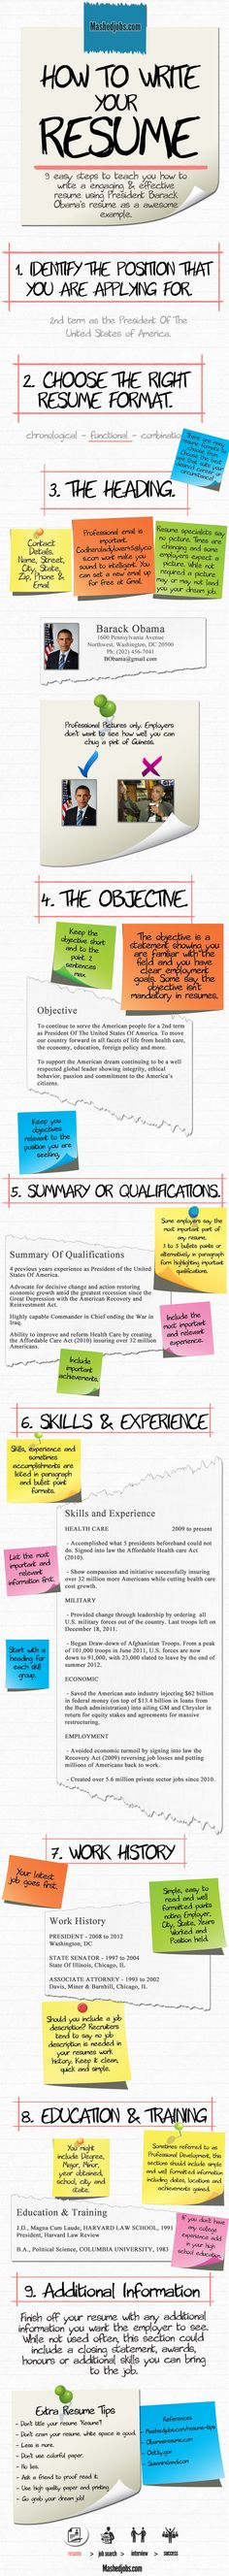 How To Write Your Resume – Infographic, prepare for your job, new job, update your resume, careers